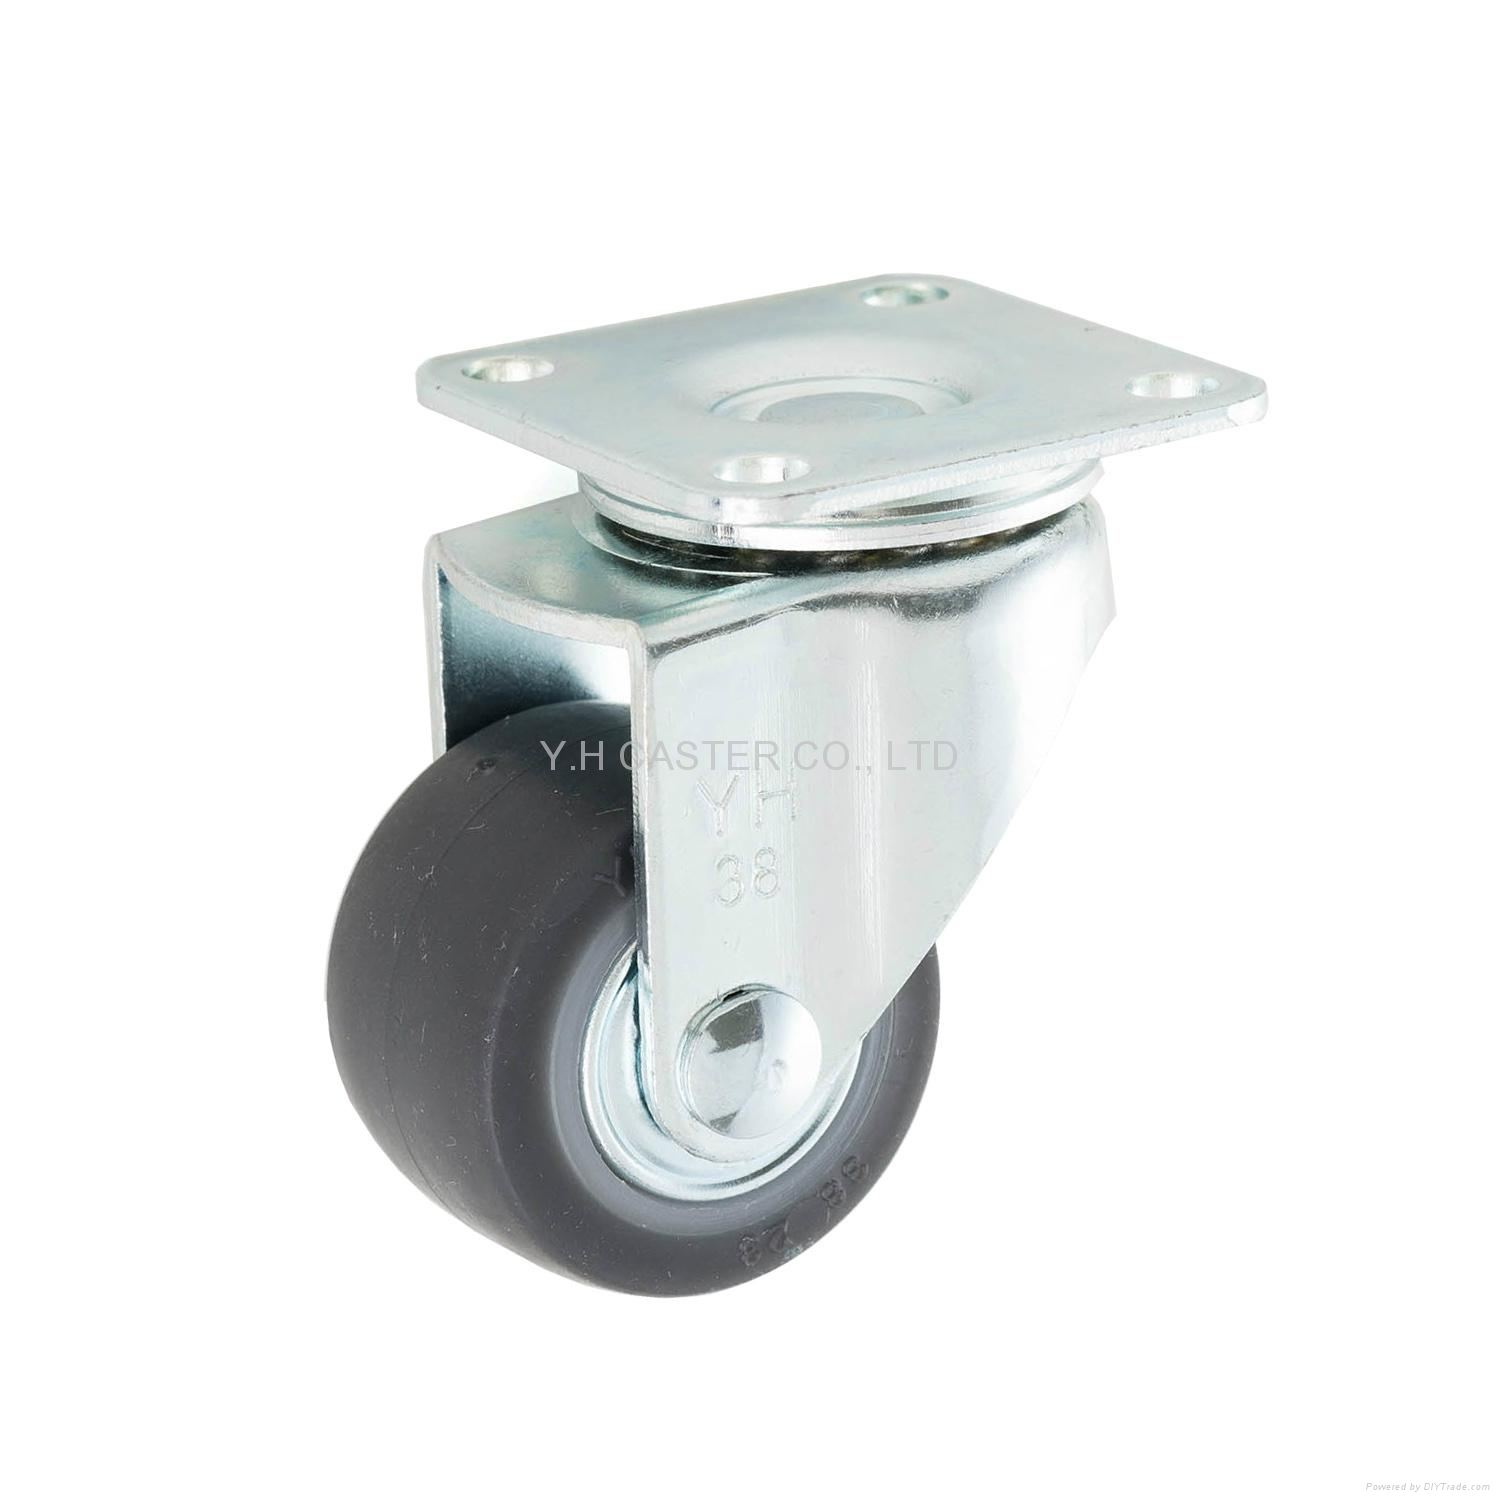 23 series 3823 high elastic tpr caster swivel plate for Y h furniture trading